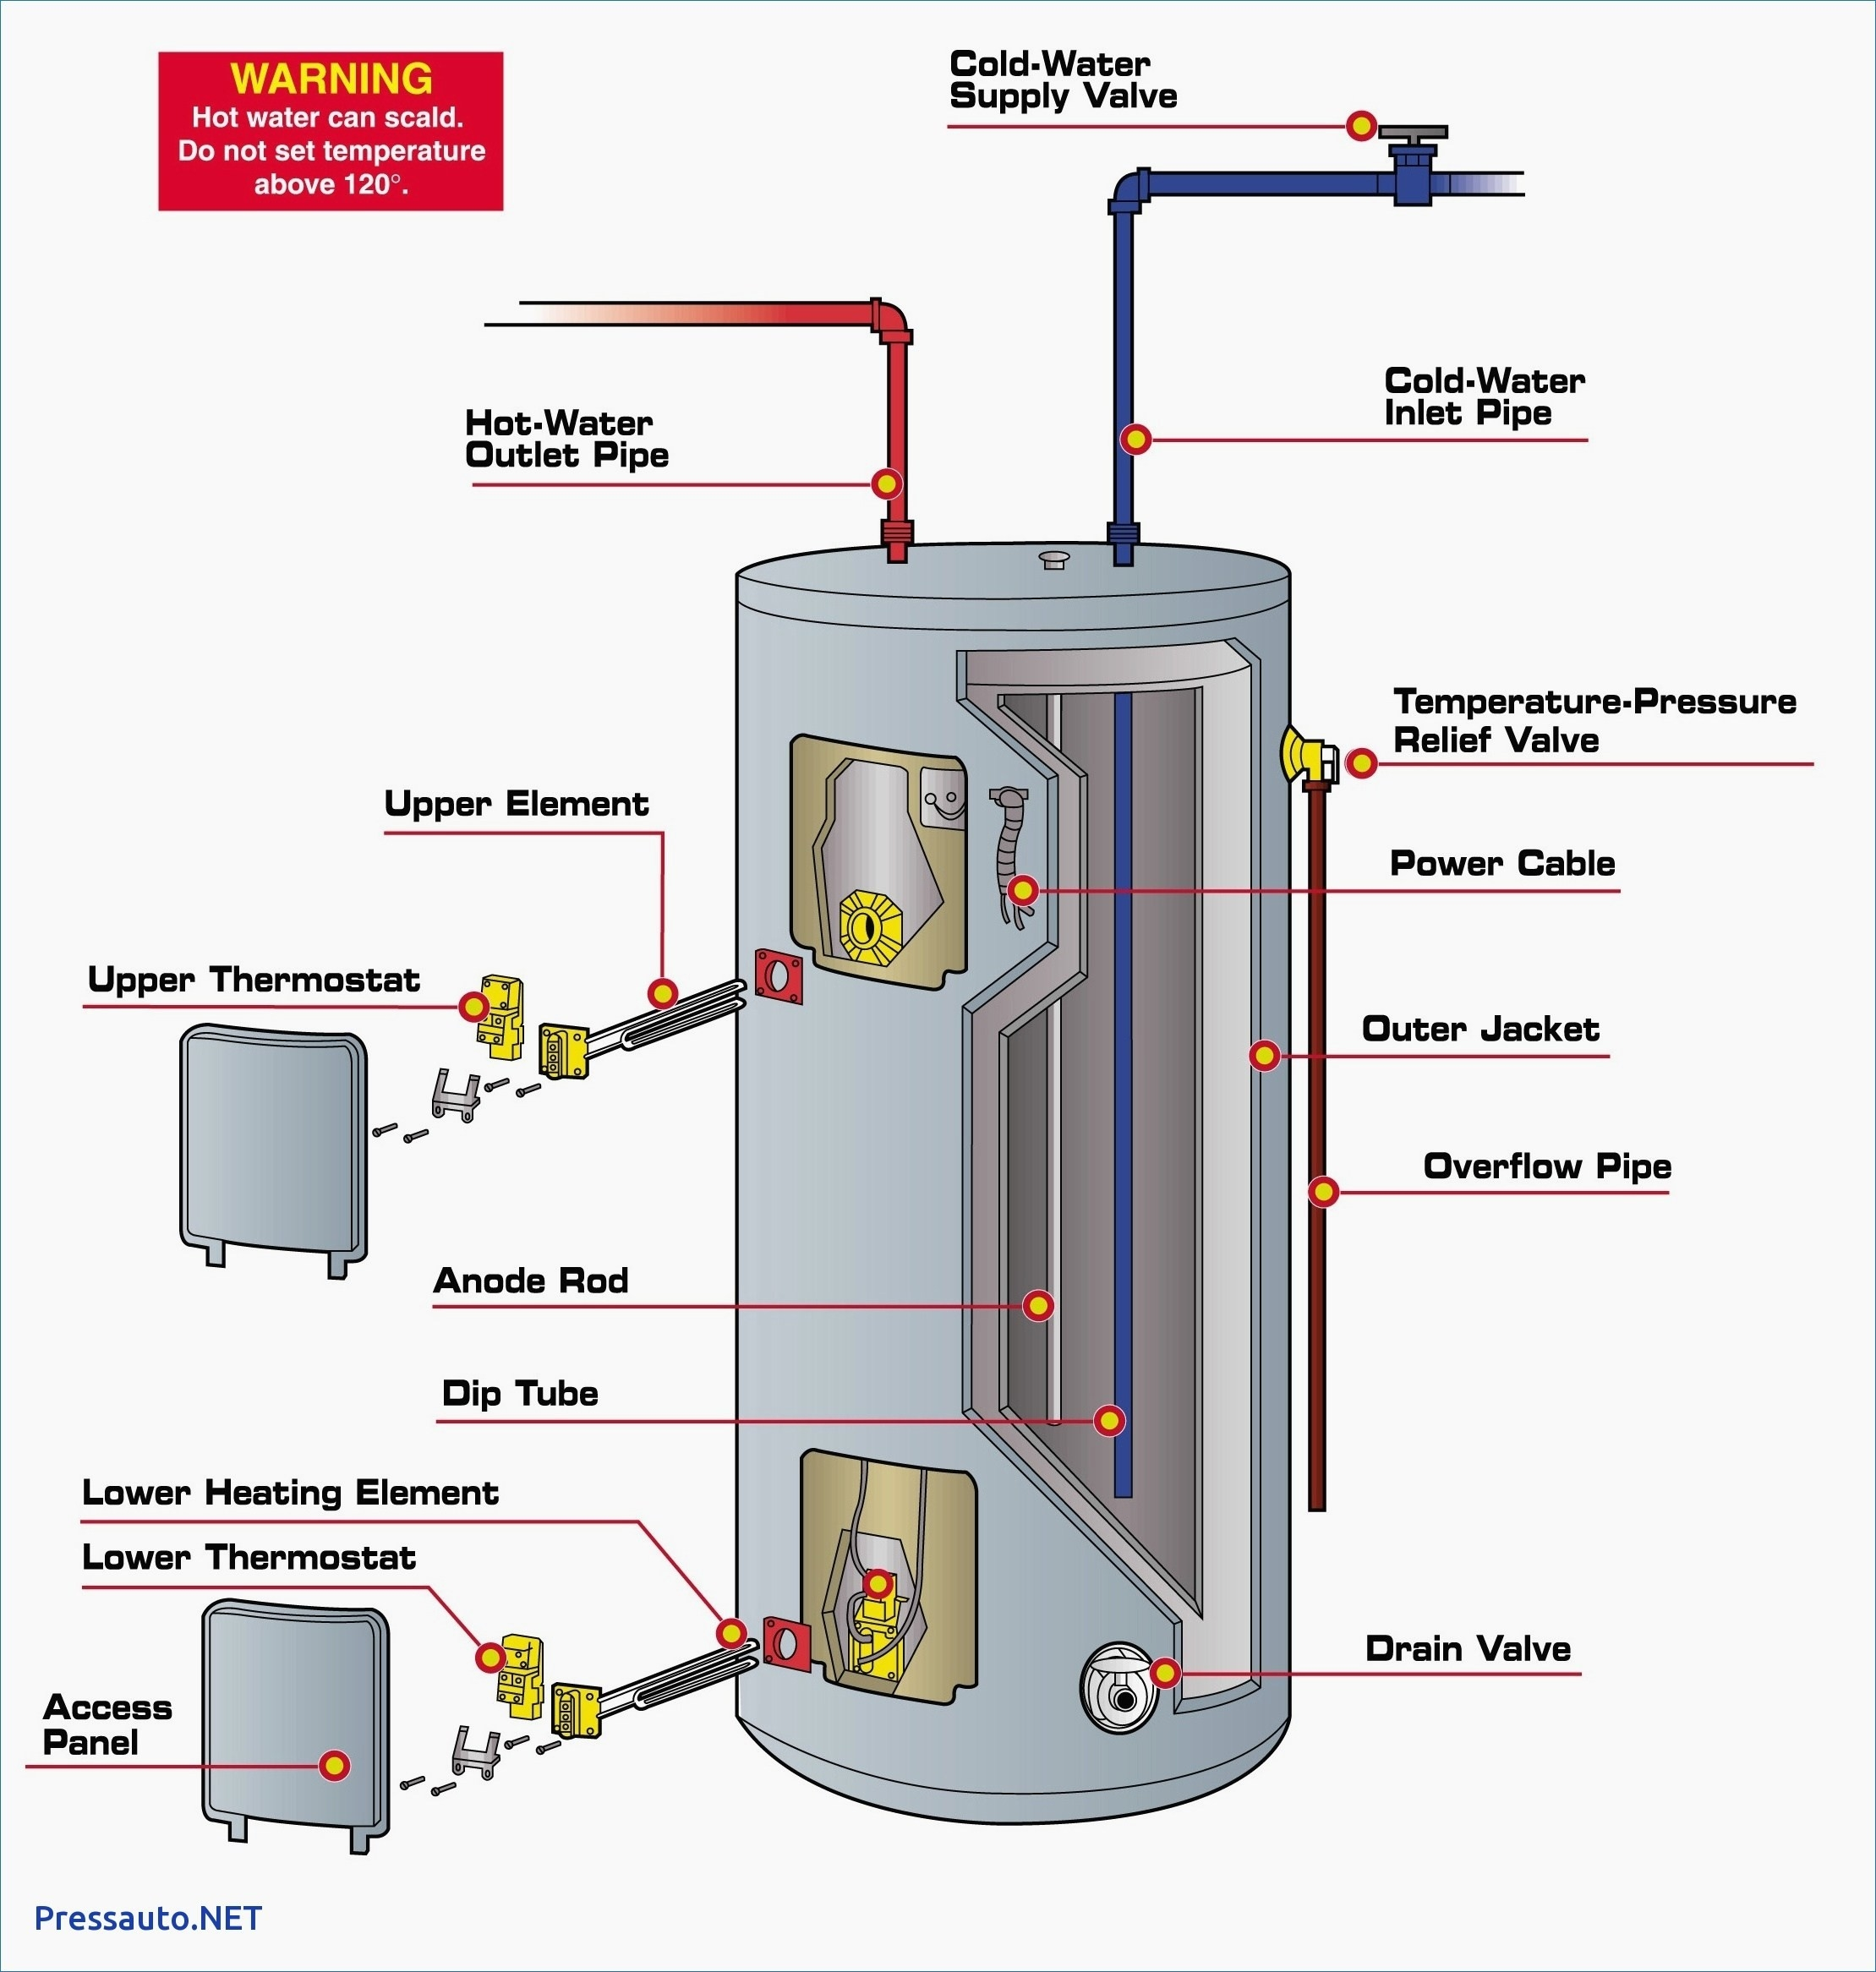 electric water heater thermostat wiring diagram Download-Wiring Diagram Electric Water Heater Fresh New Hot Water Heater Wiring Diagram Diagram 19-r